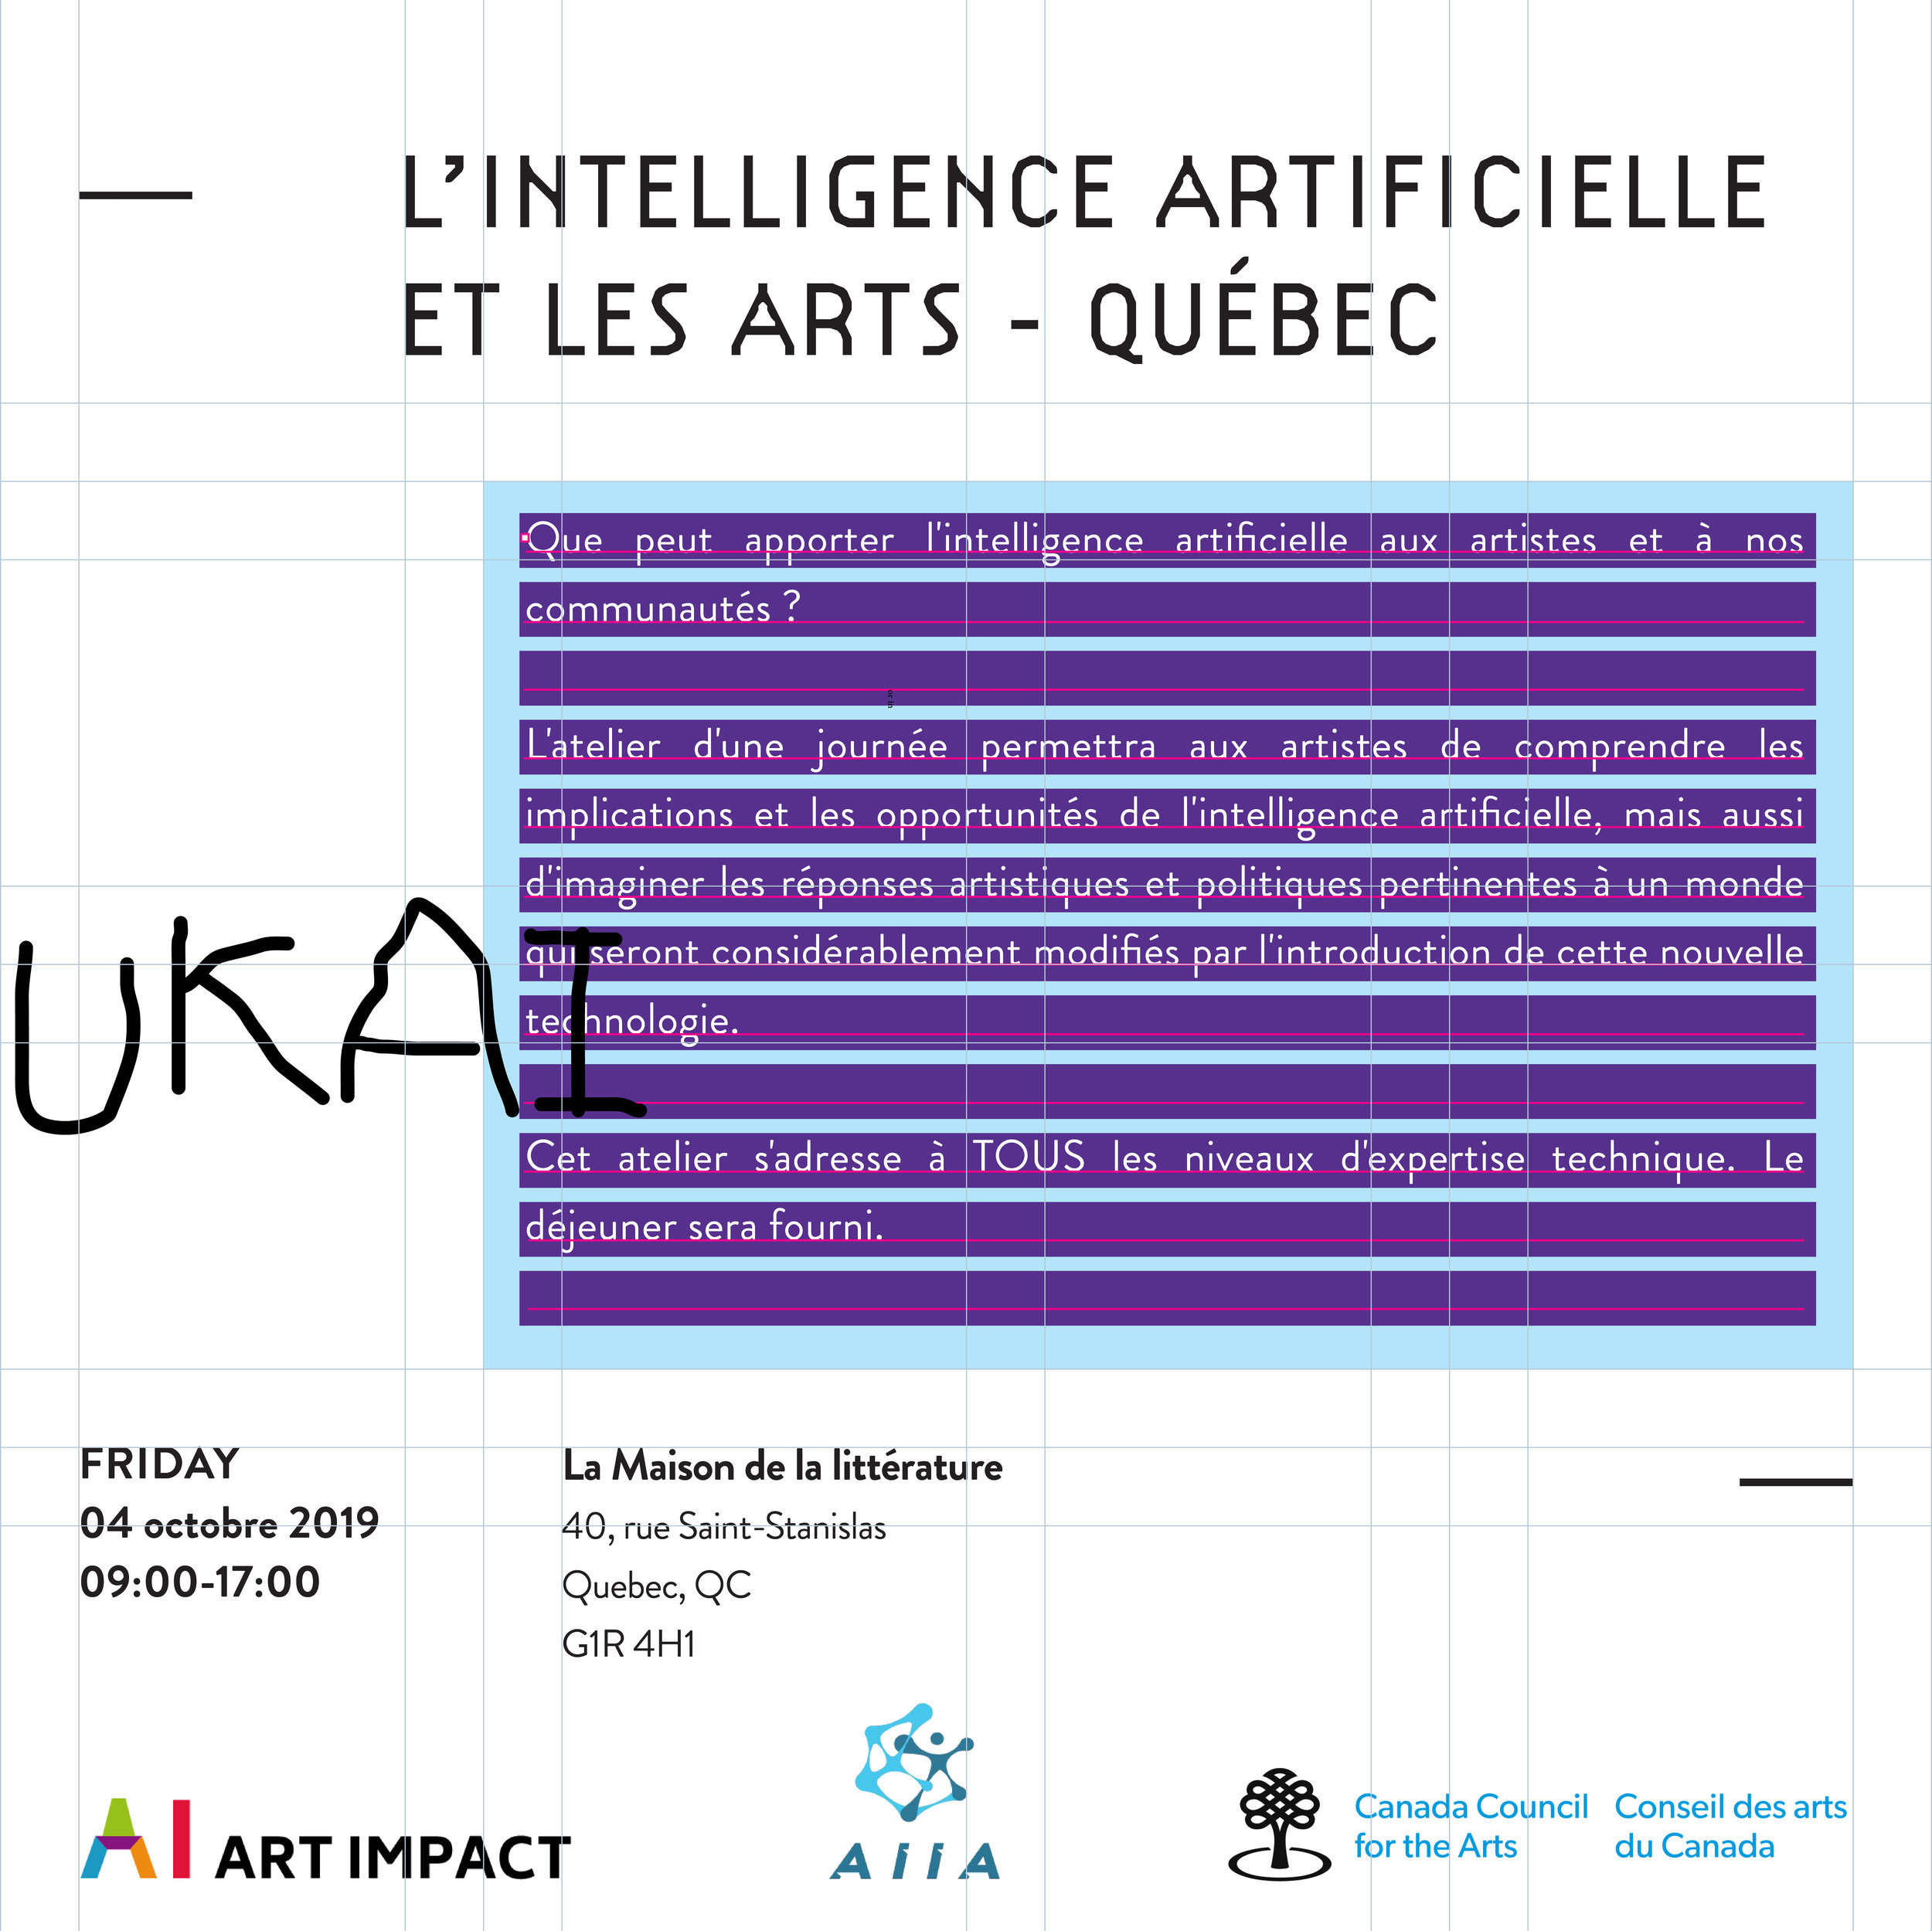 L'Intelligence Artificielle et les Arts - Quebec